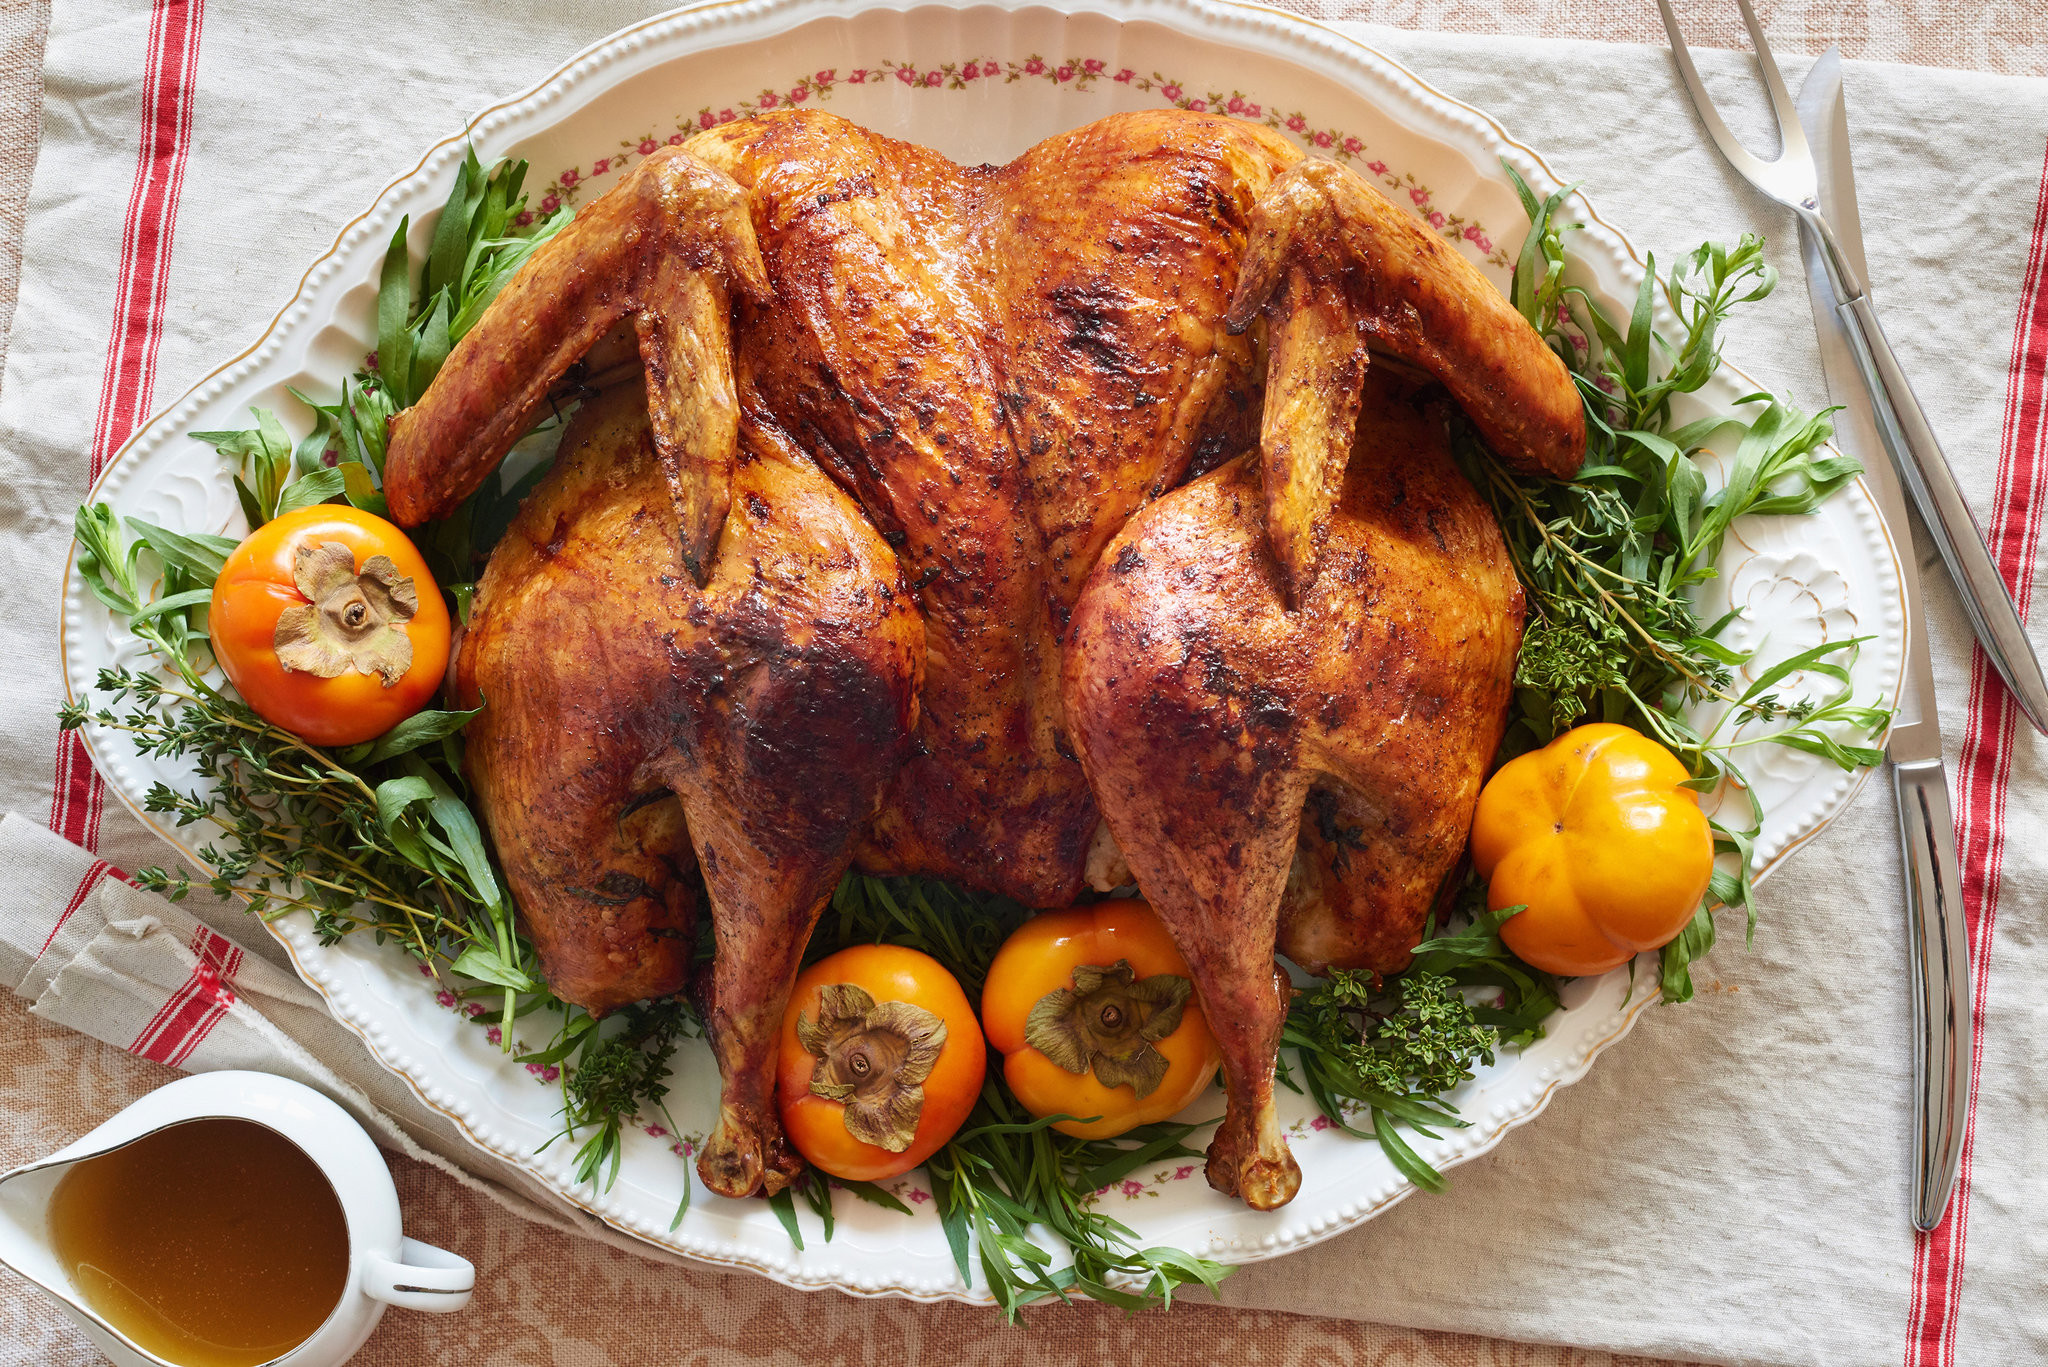 Bake Turkey Recipe For Thanksgiving  45 Minute Roast Turkey Recipe NYT Cooking